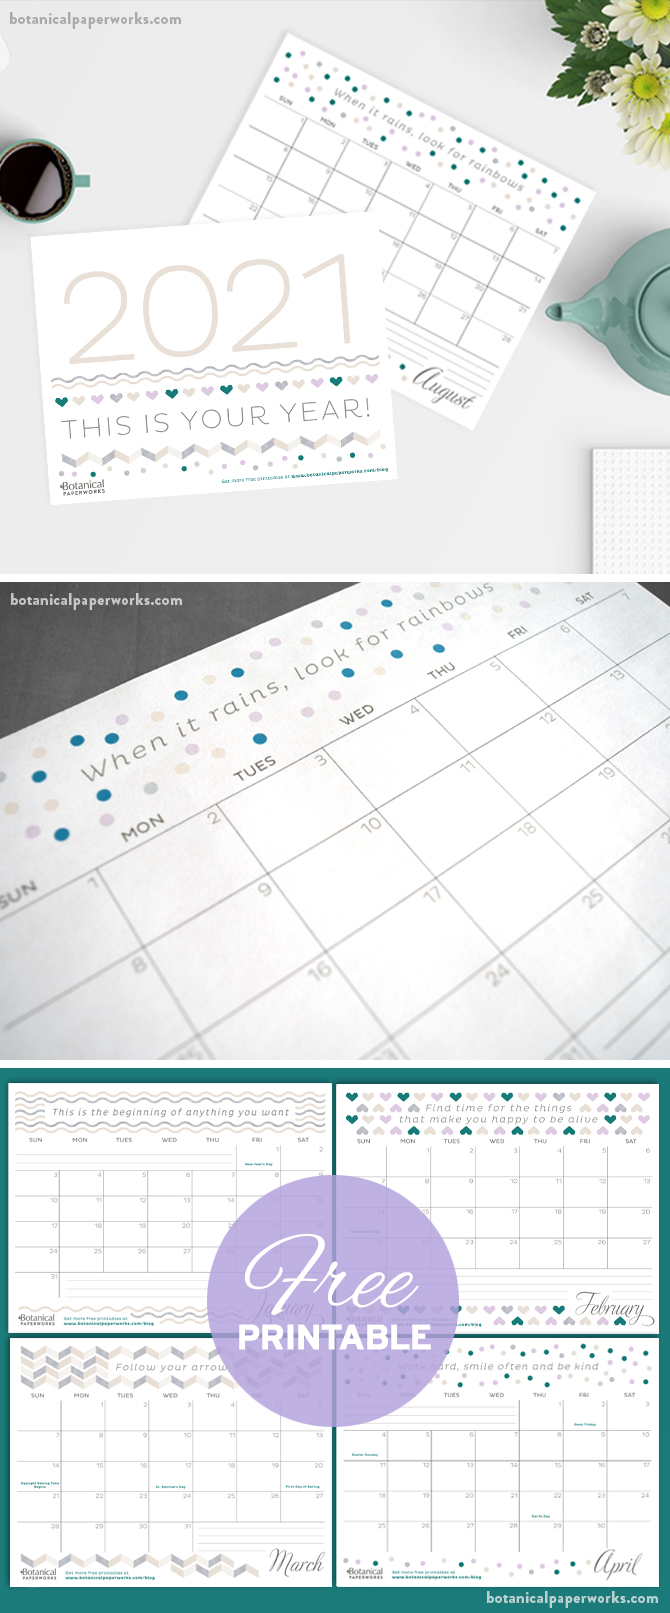 free printable calendar for 2021 with inspirational quotes